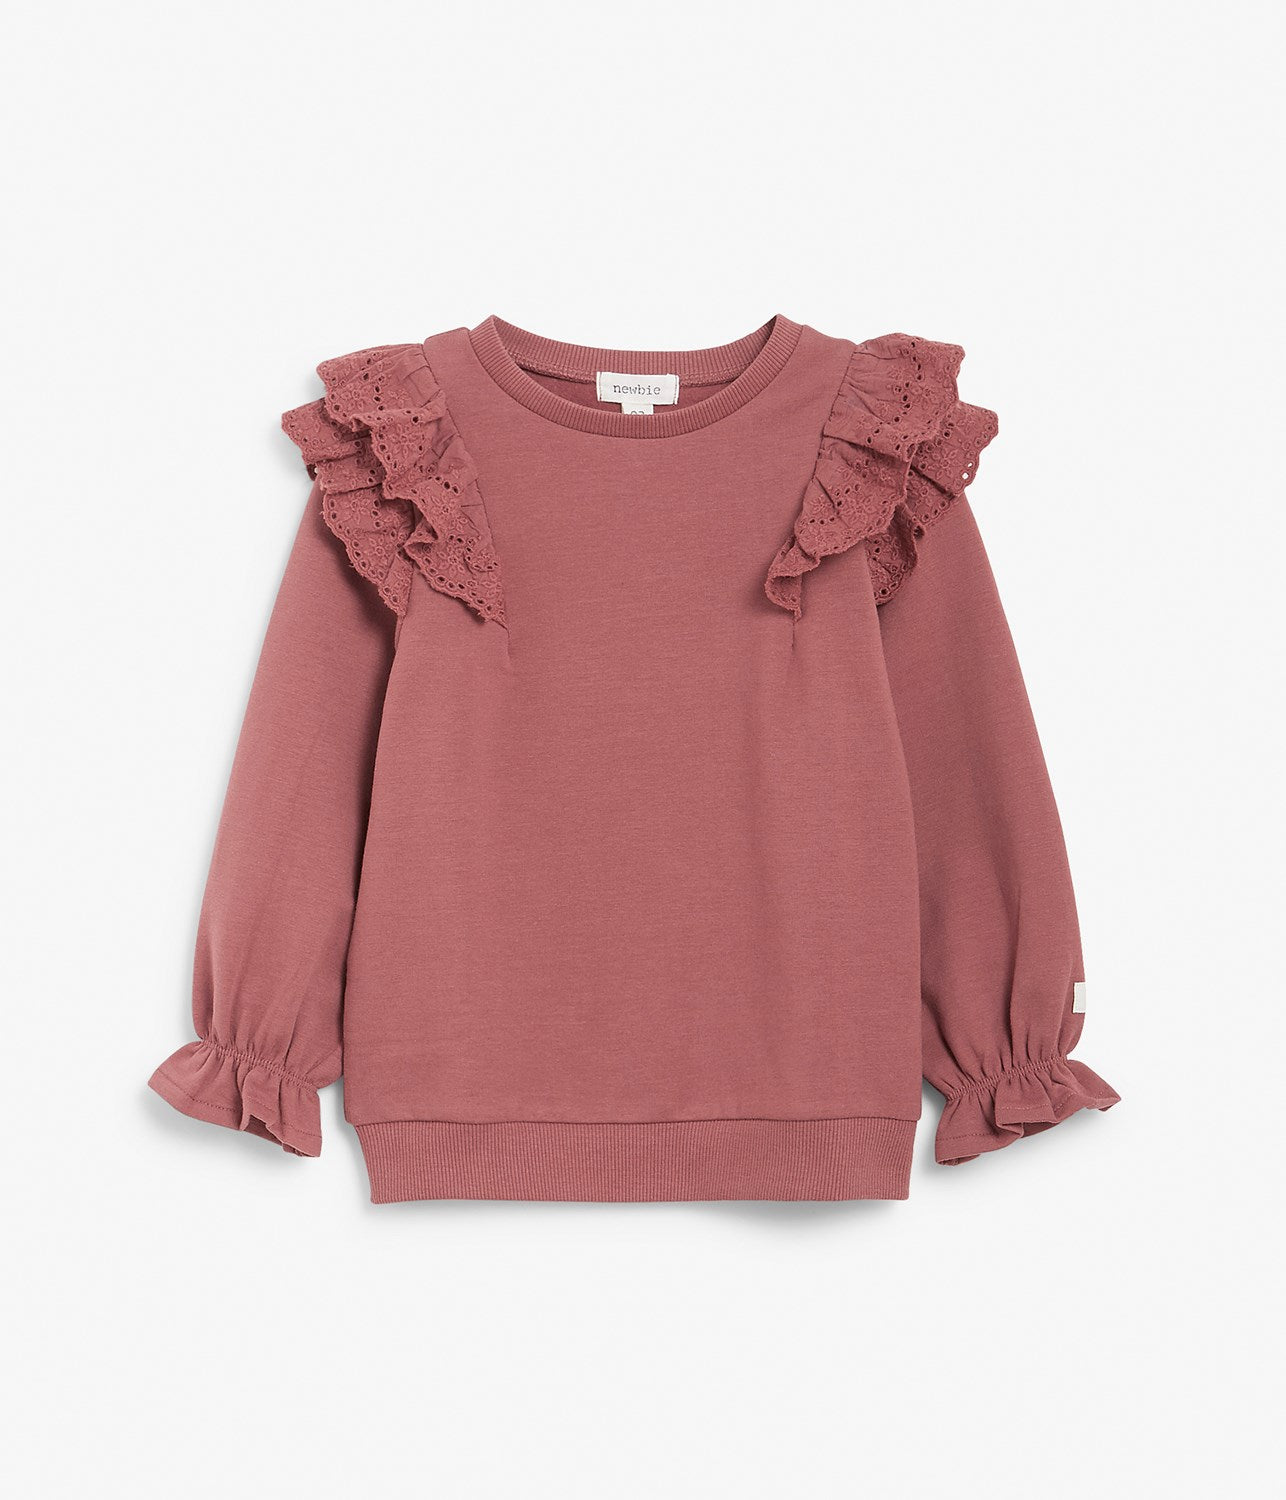 Kids pink sweatshirt with lace